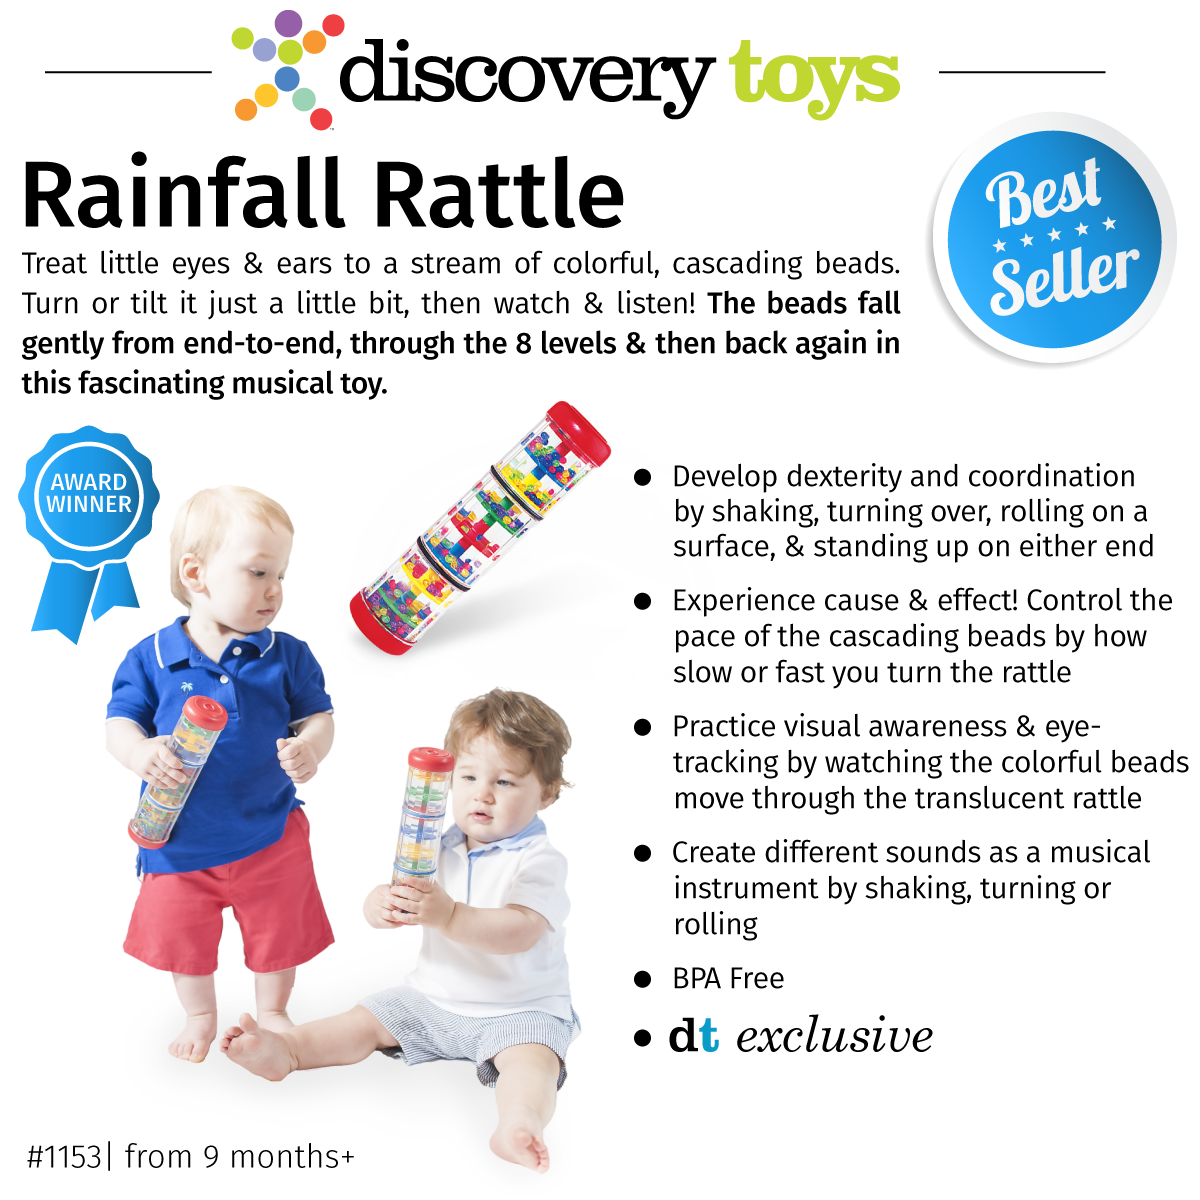 Discovery Toys has a number of wonderful musical products to help ignite and strengthen connections in a young brain and to inspire a young soul. Chiming Charlie, Sensory Sights, Rockin' Roller, and Stack Roll & Jingle can all produce a chime or jingle sound.